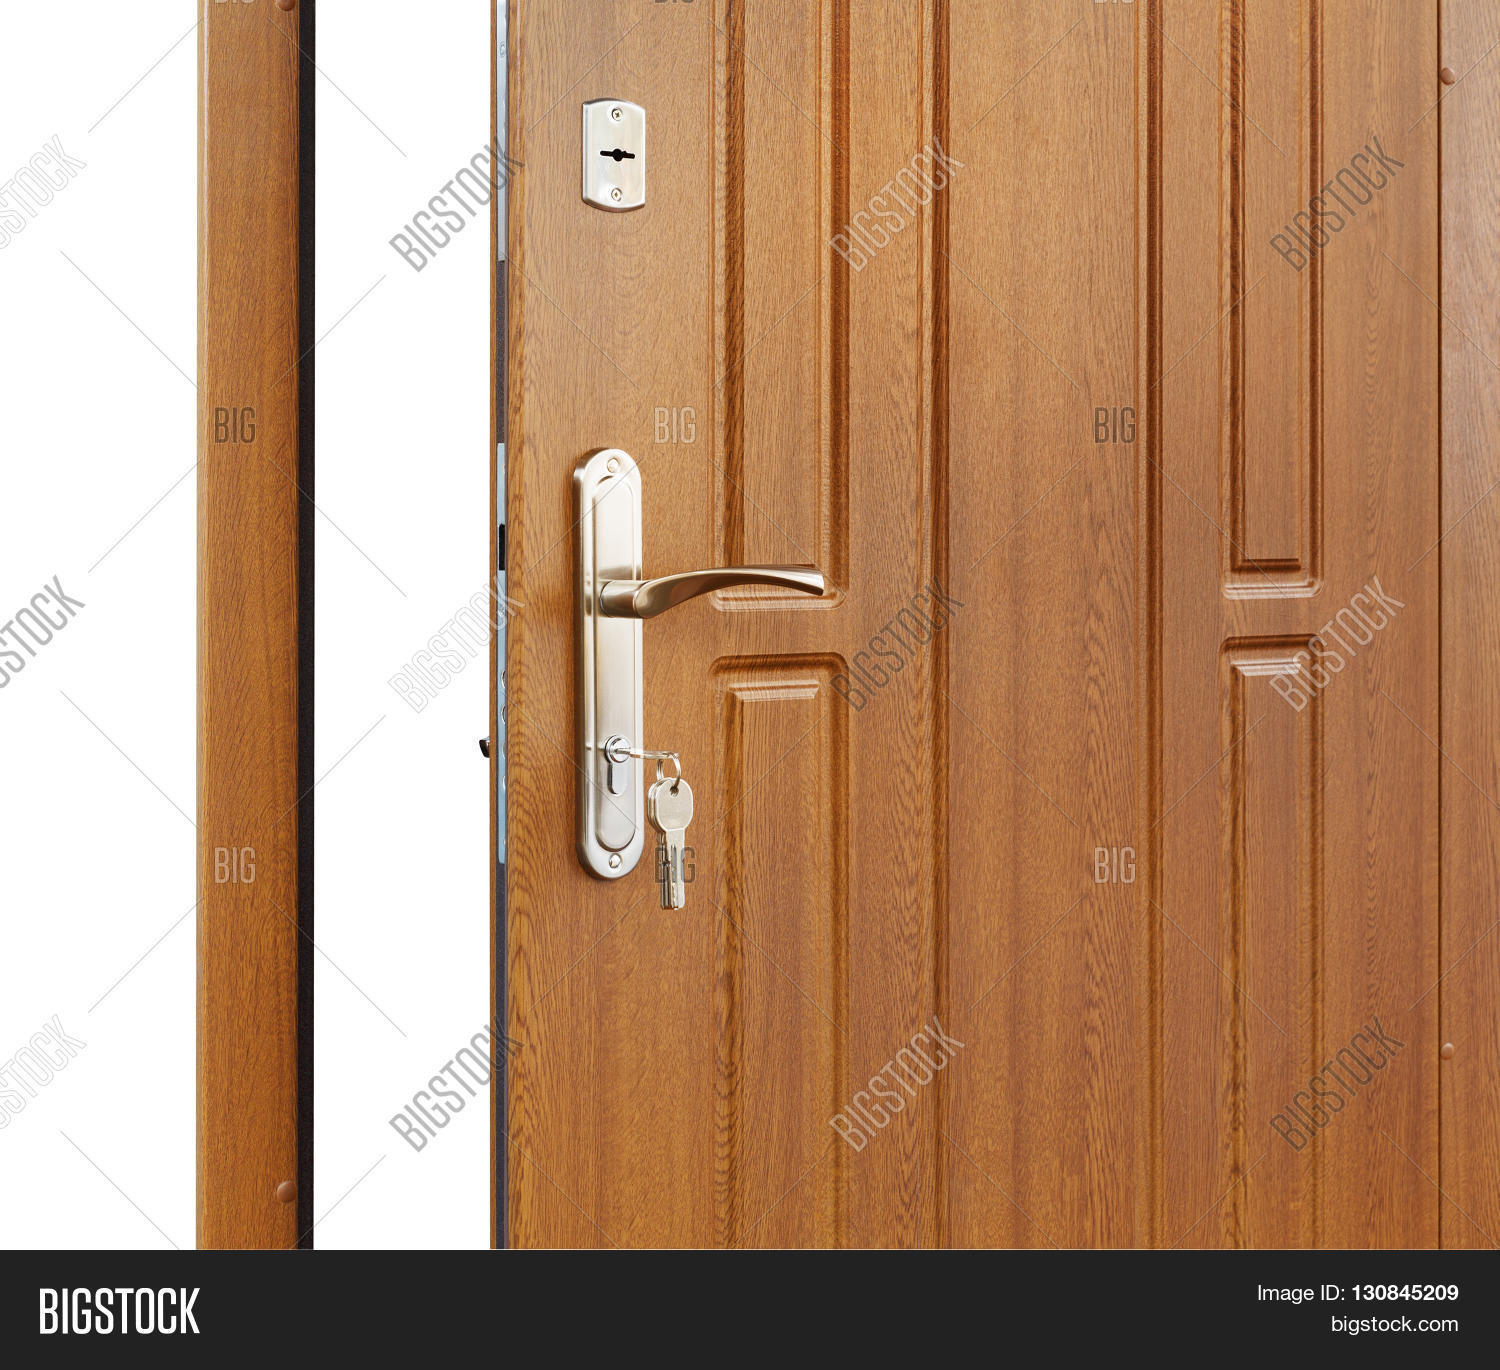 Wooden door handles designs images for Door key design